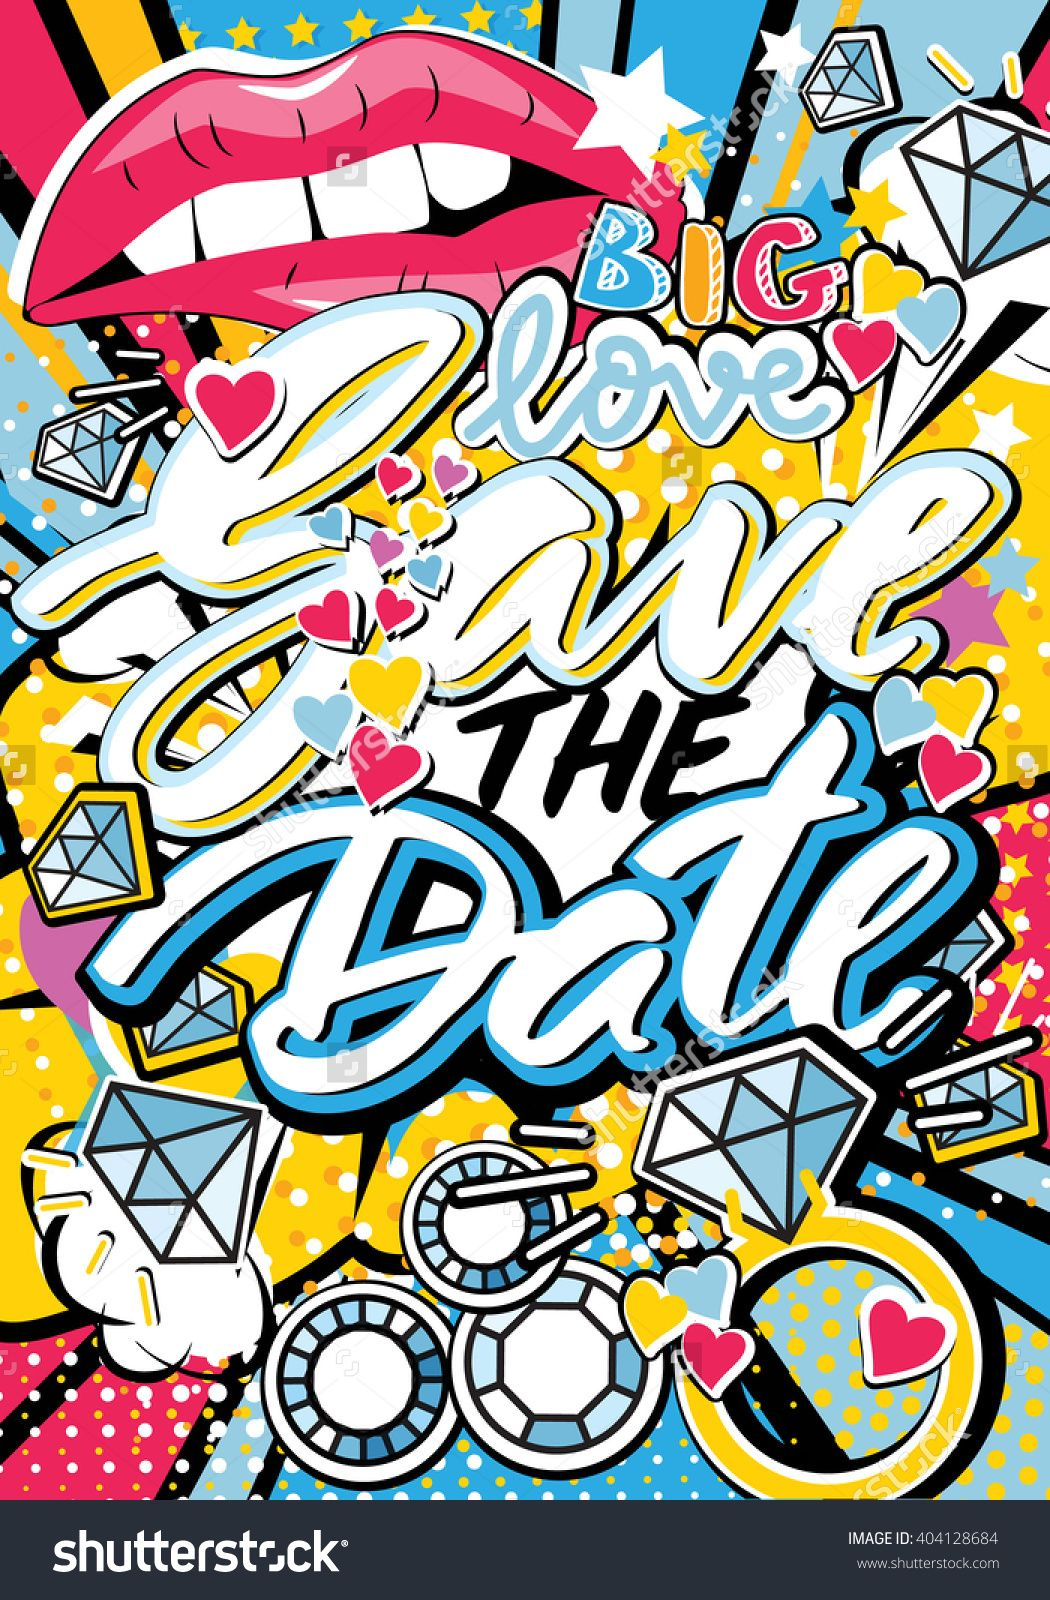 Save The Date Wedding Invitation Card In Pop Art Style With Hand Written Type Lips